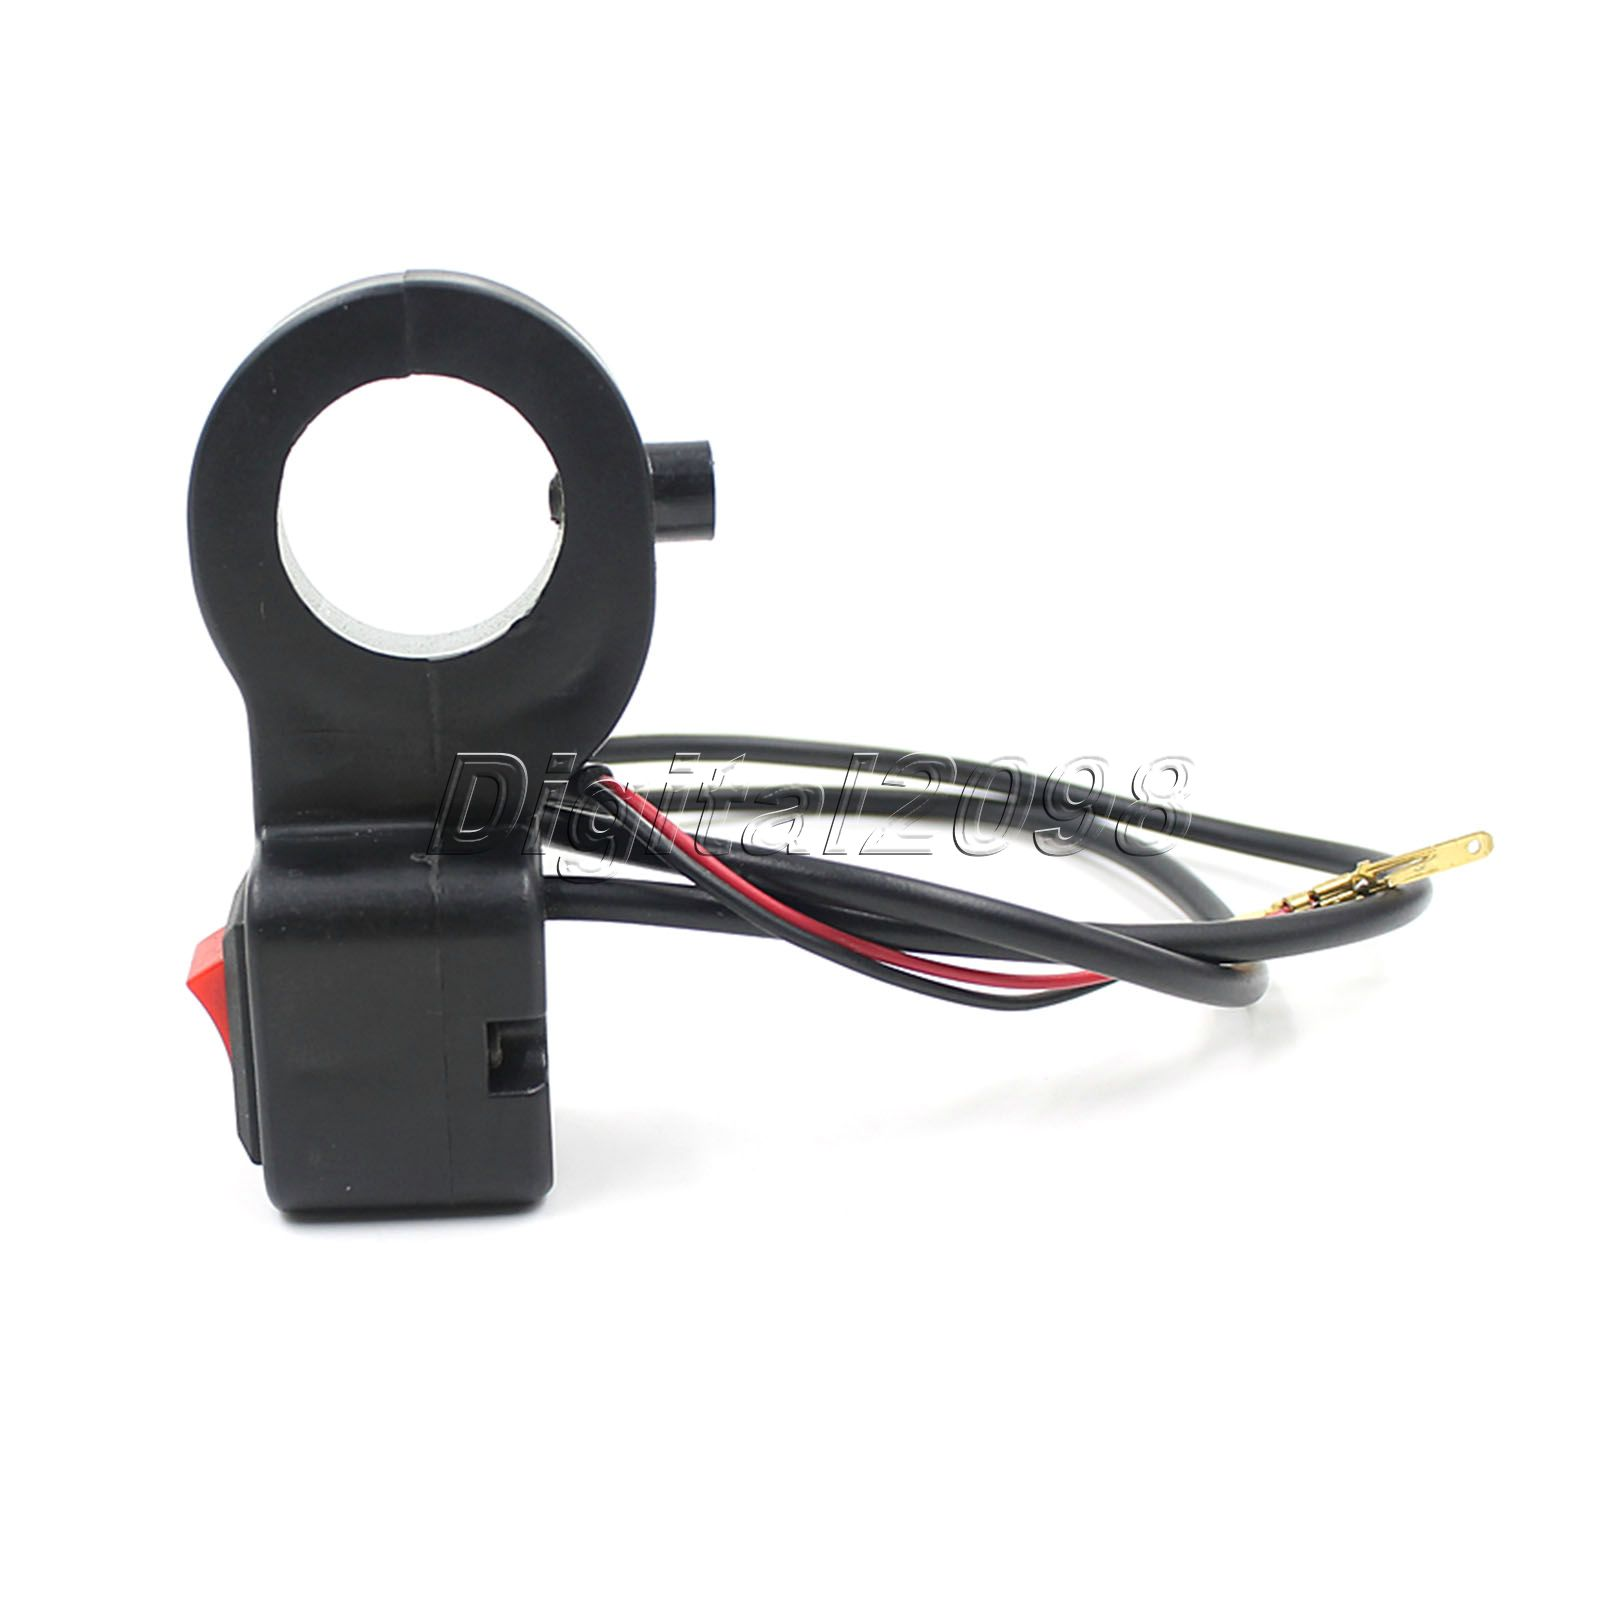 Universal Motorcycle Handlebar Switch Scooter Atv Headlight Fog Spot How To Wire A Kill On Lamp Electrical Start Off Moto Spare Parts In Switches From